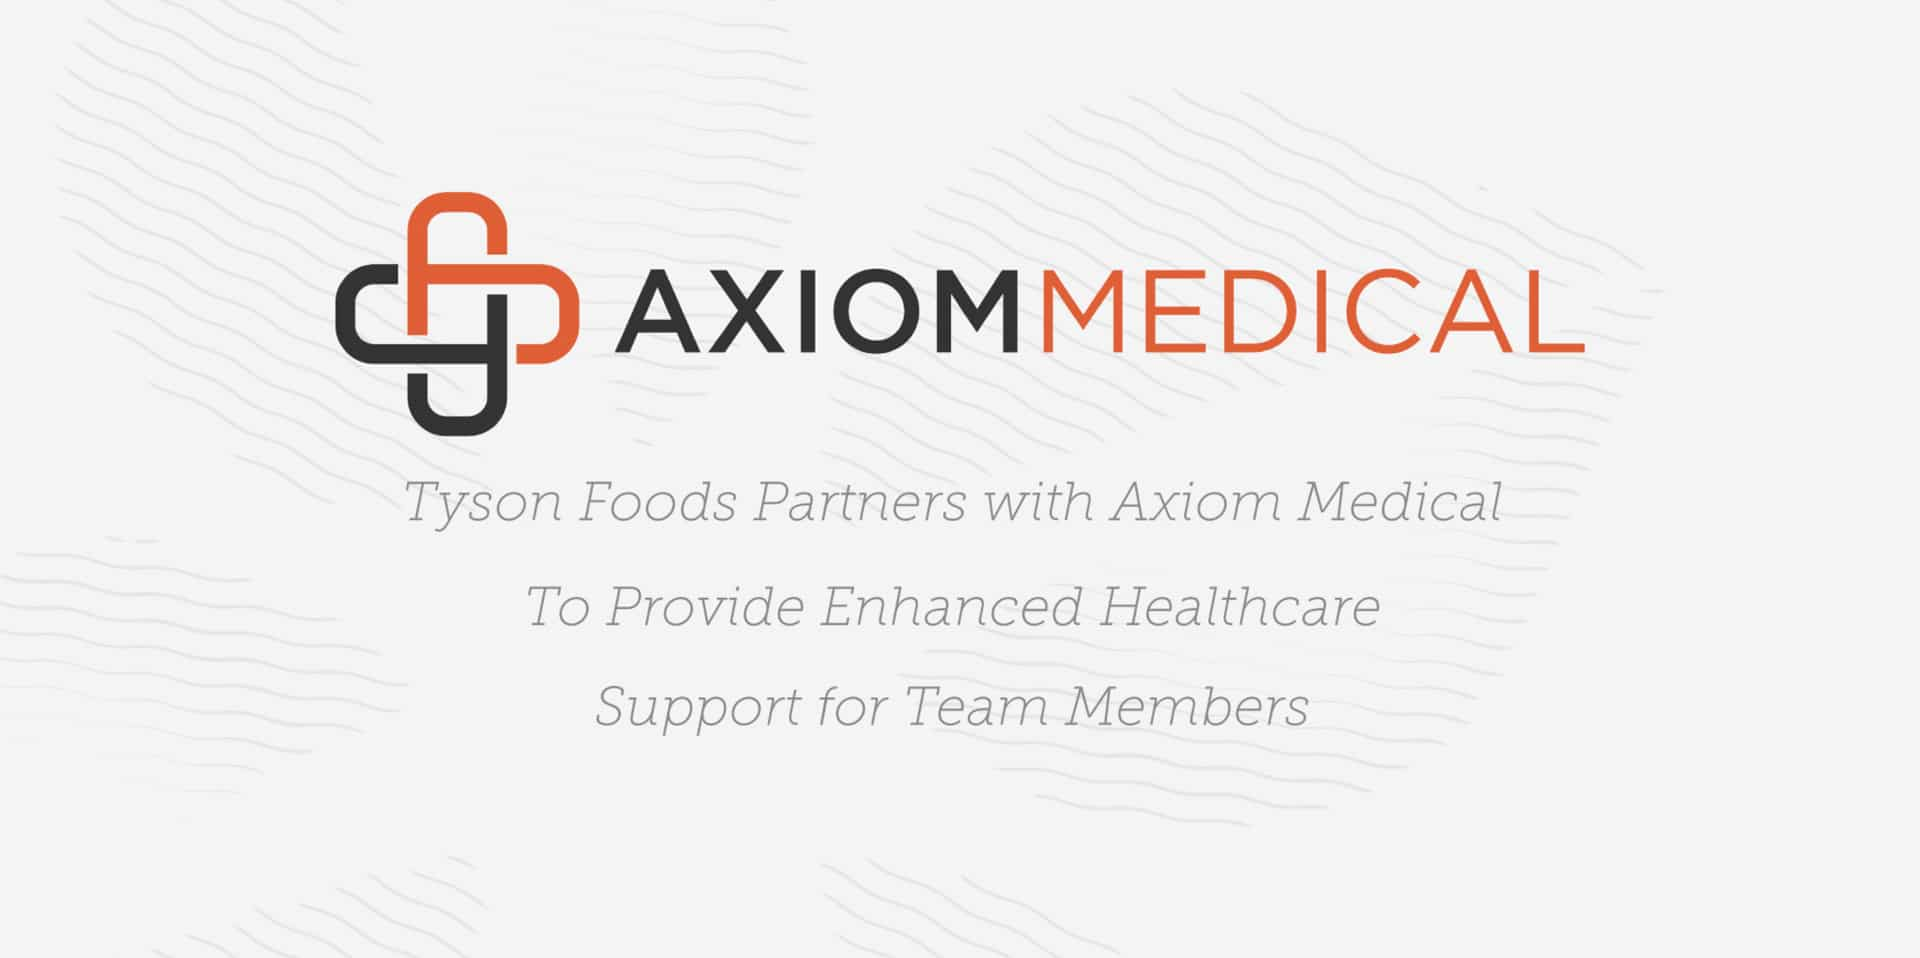 Tyson Foods Partners with Axiom Medical to Provide Enhanced Healthcare Support for Team Members